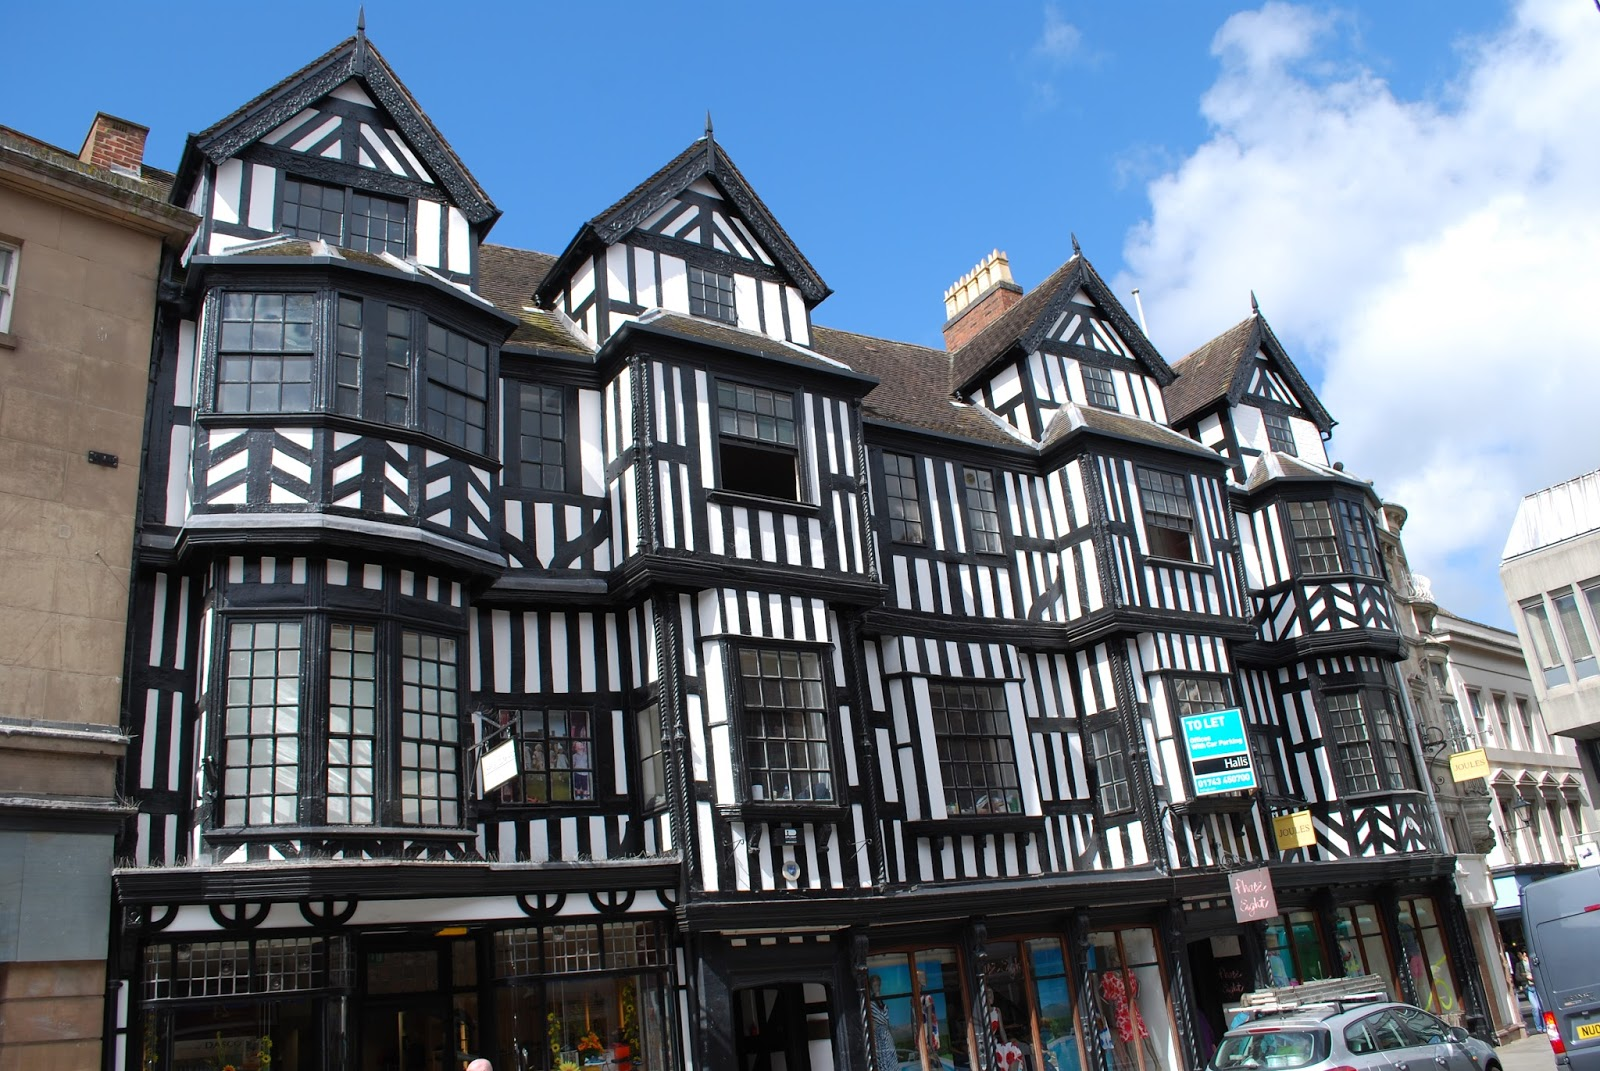 Peter G Shilston 39 S Blog Shrewsbury Black And White Buildings